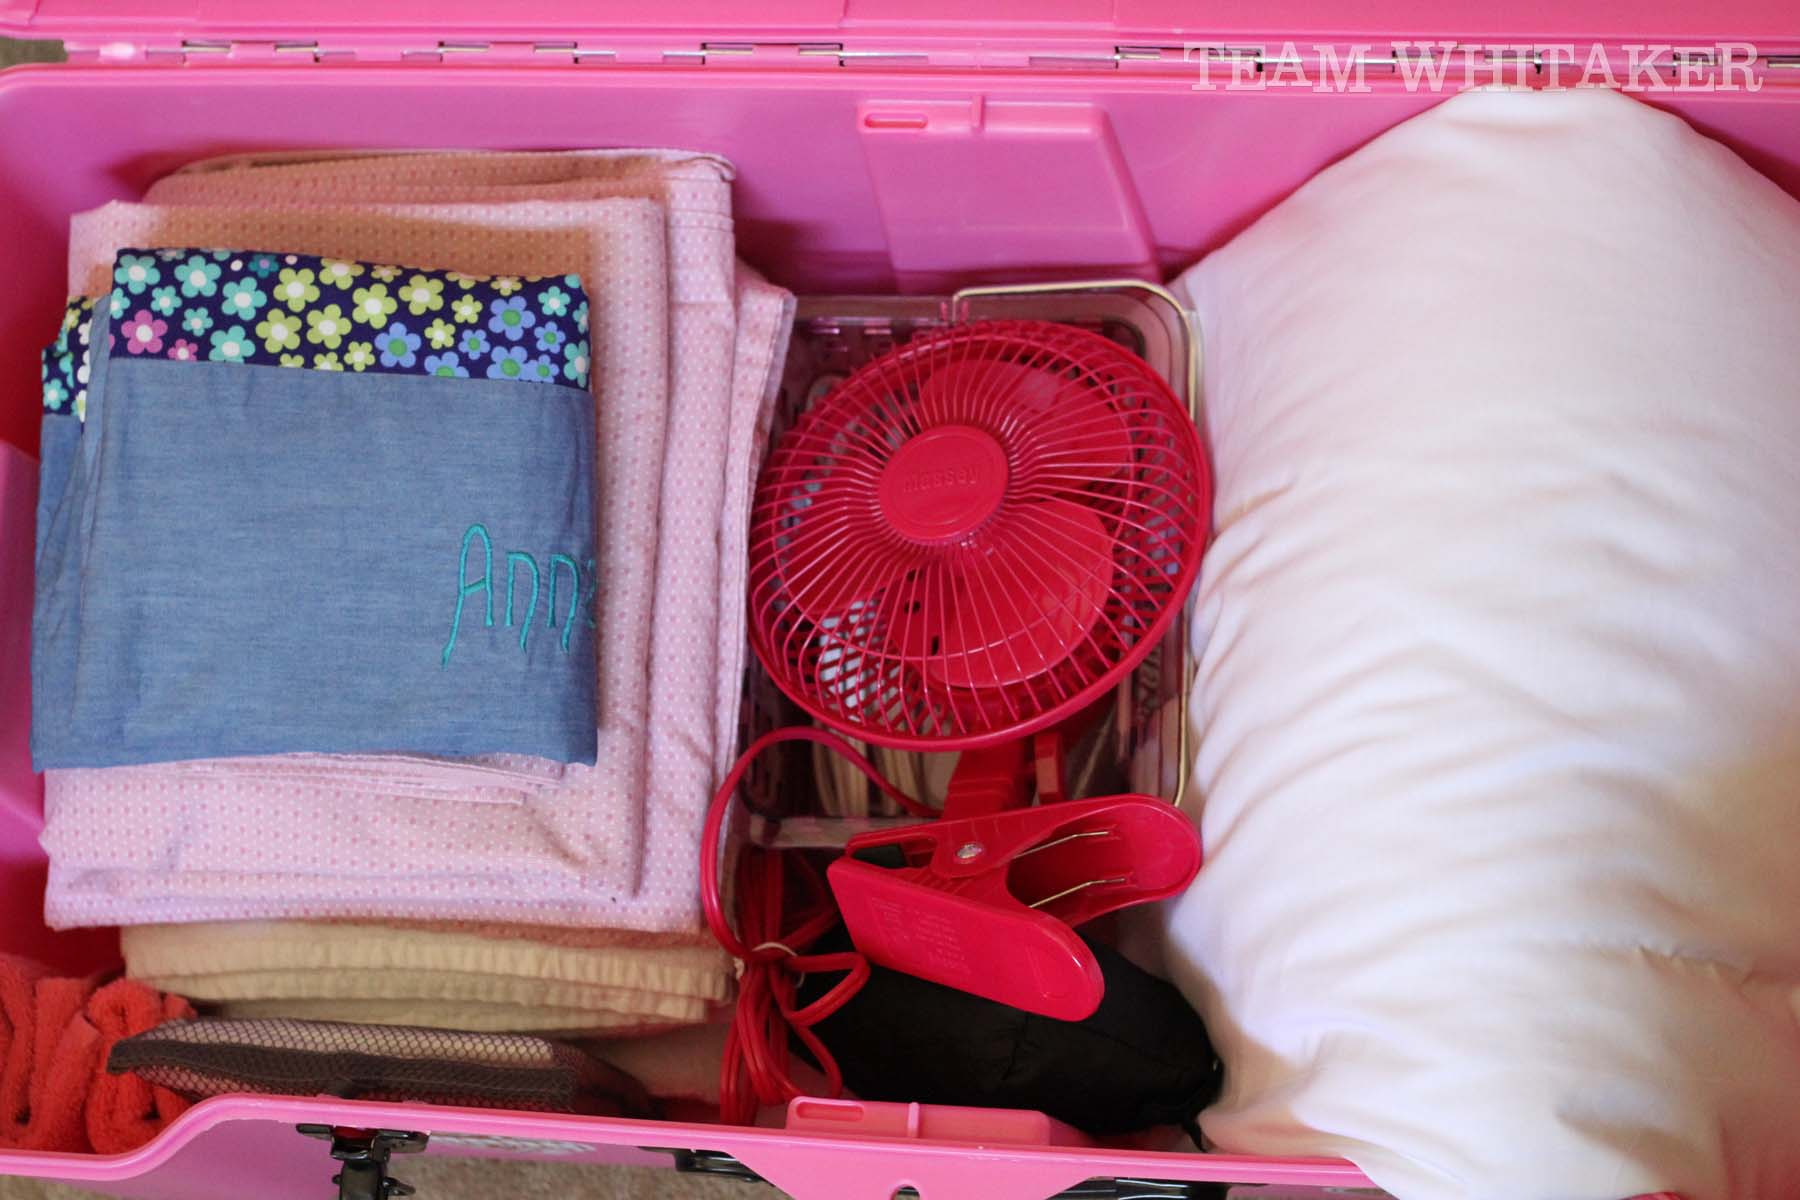 Stressed about packing your child for summer camp? Never fear! Here are 9 easy ideas to getting your camper summer ready in no time.